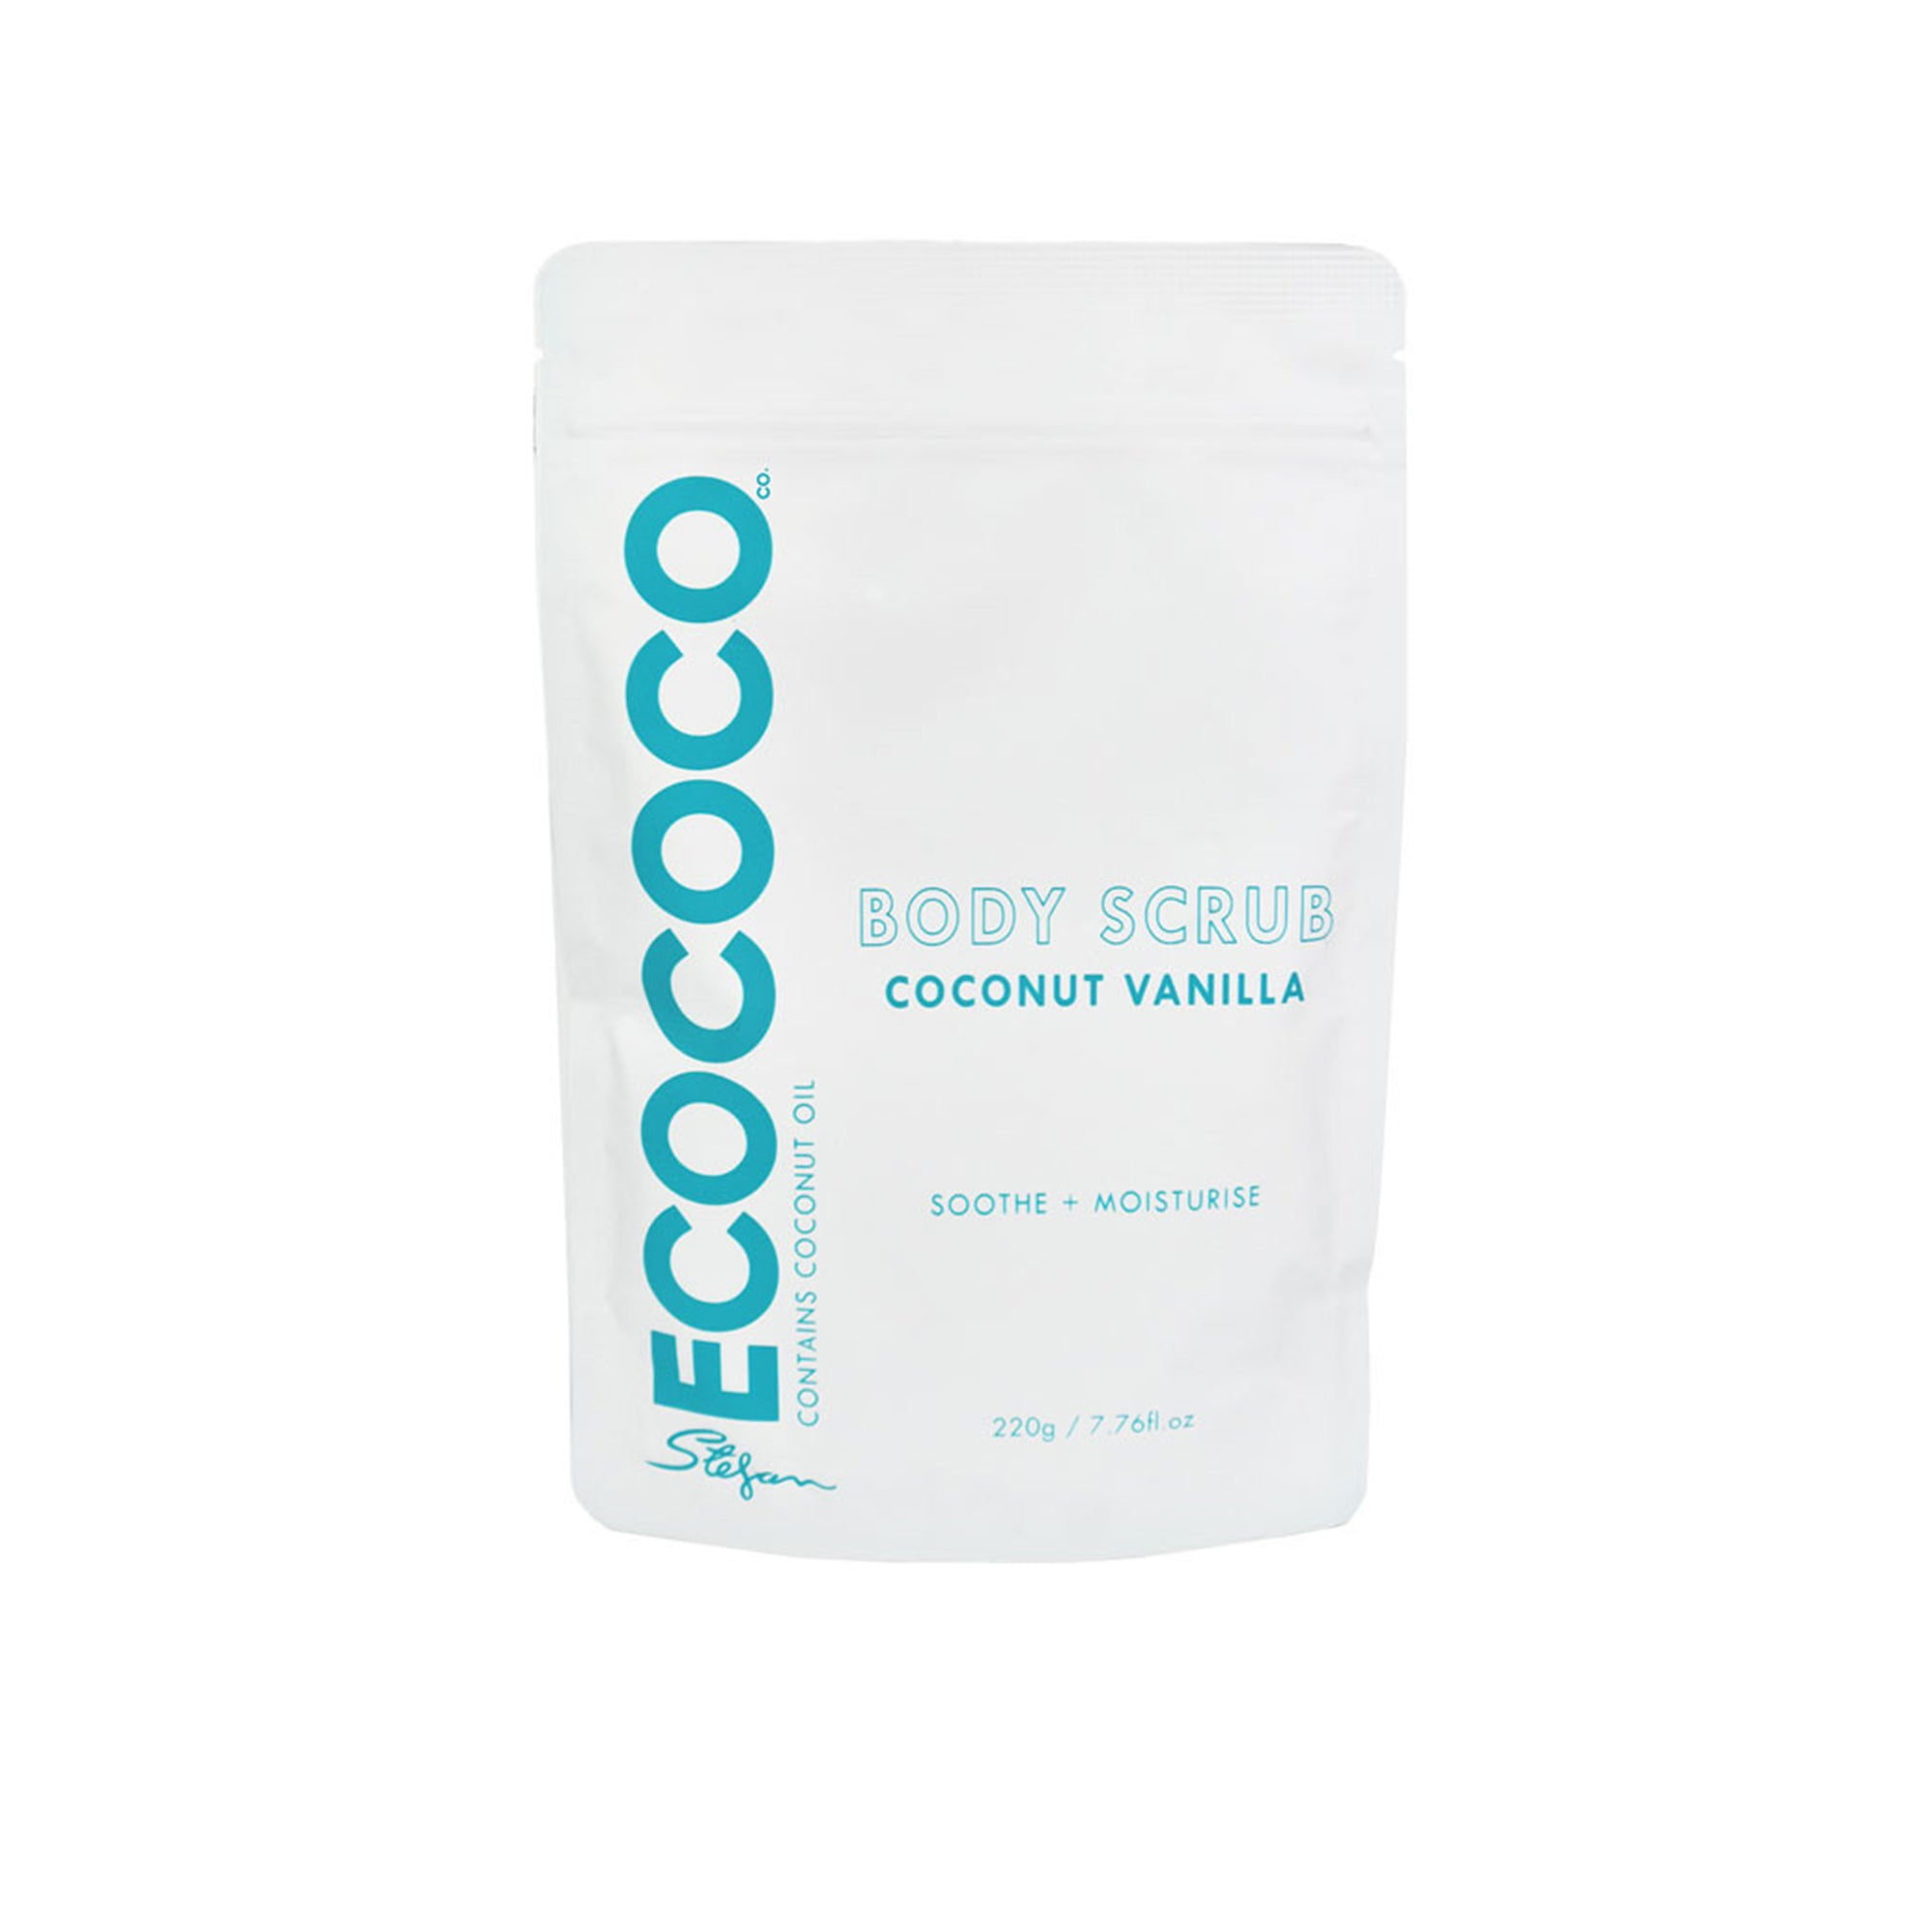 Coconut Vanilla Body Scrub